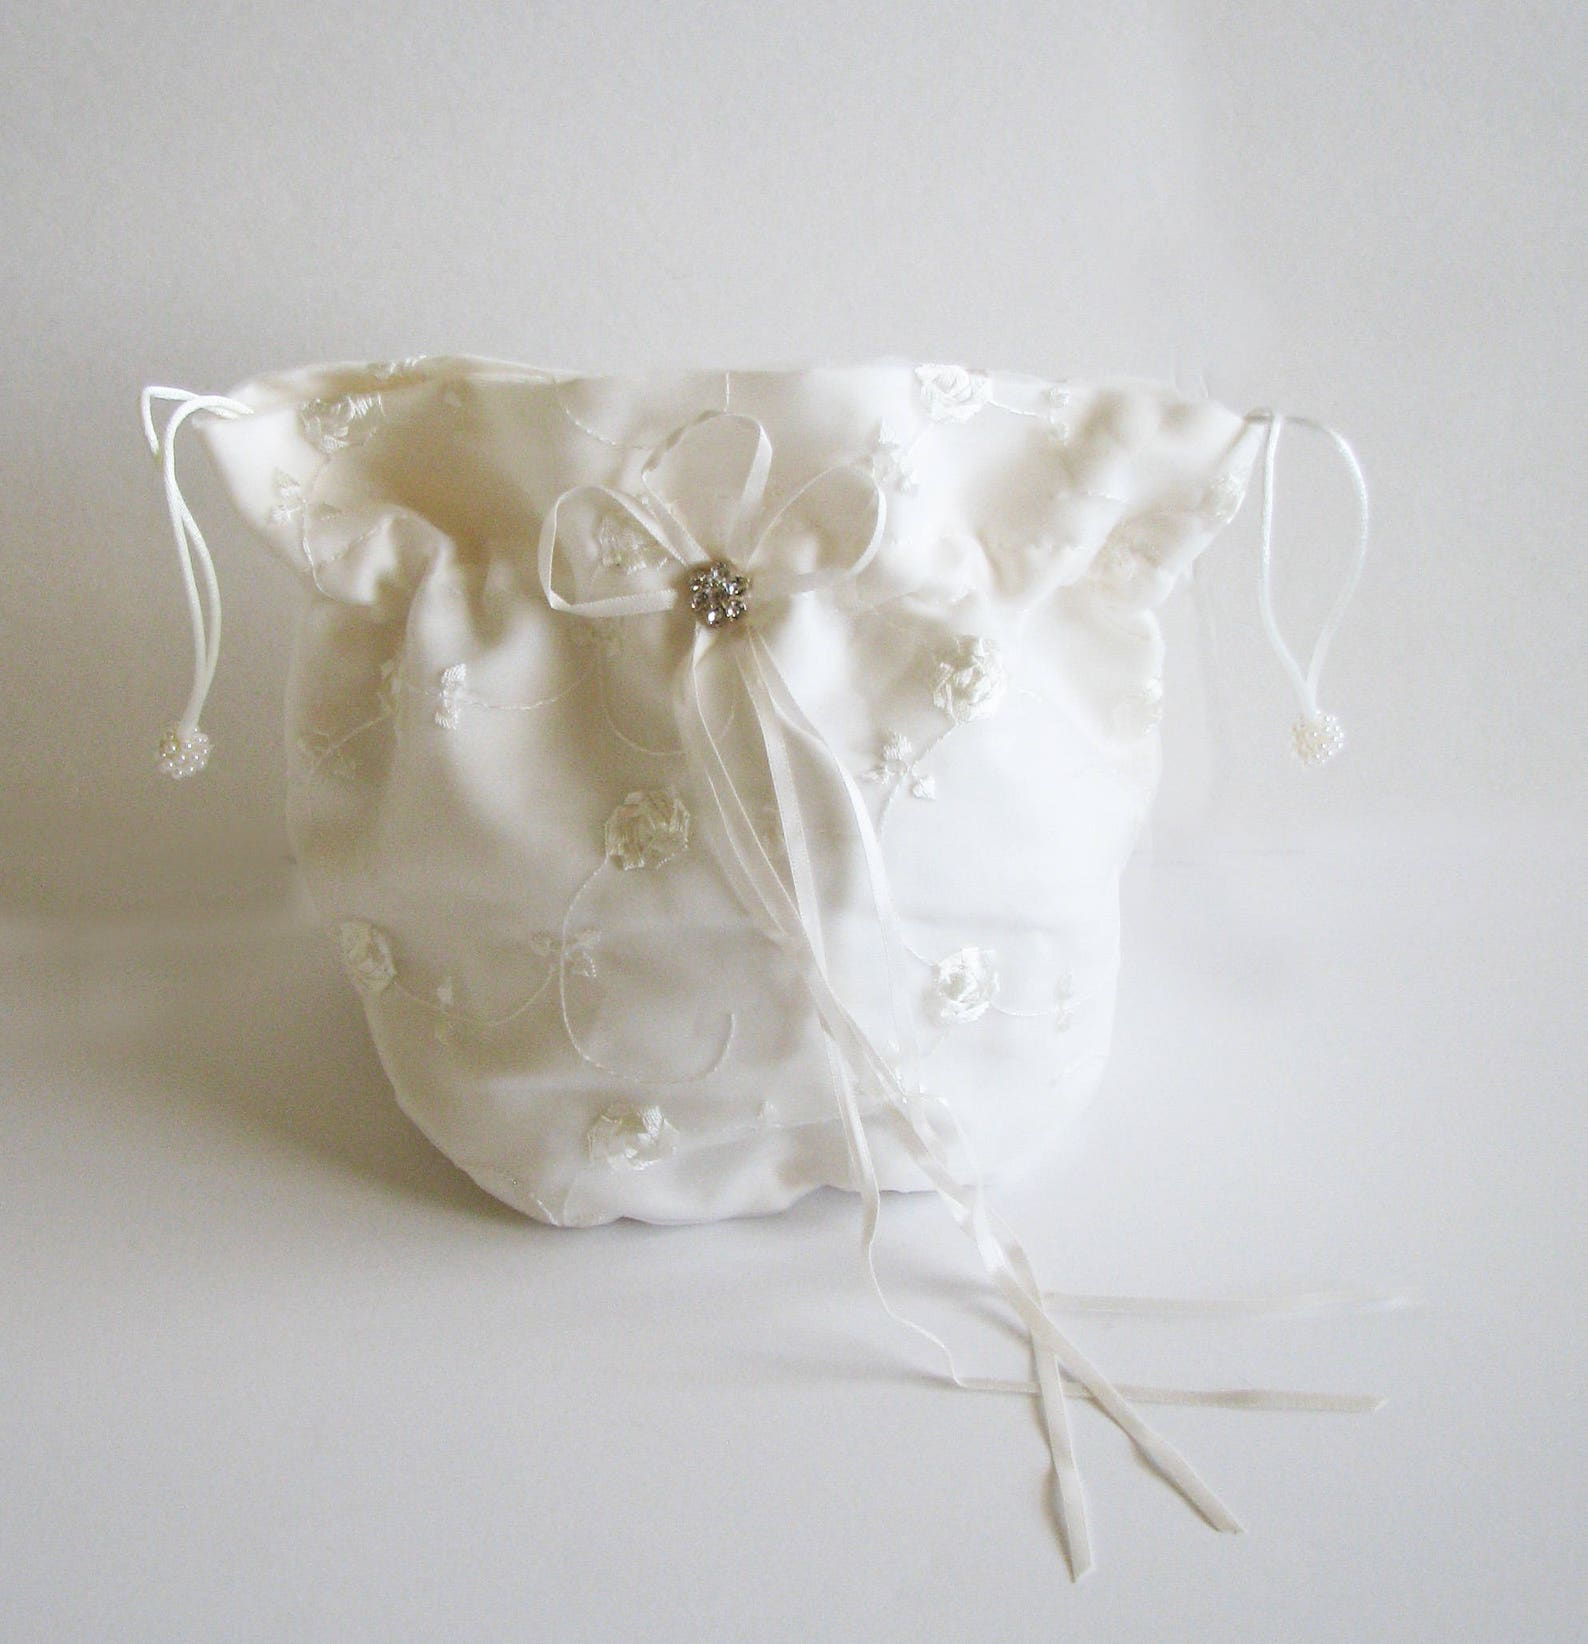 brides drawstring bag, dollar a dance bag, brides bag, embroidered bag, little girl ballet shoe bag